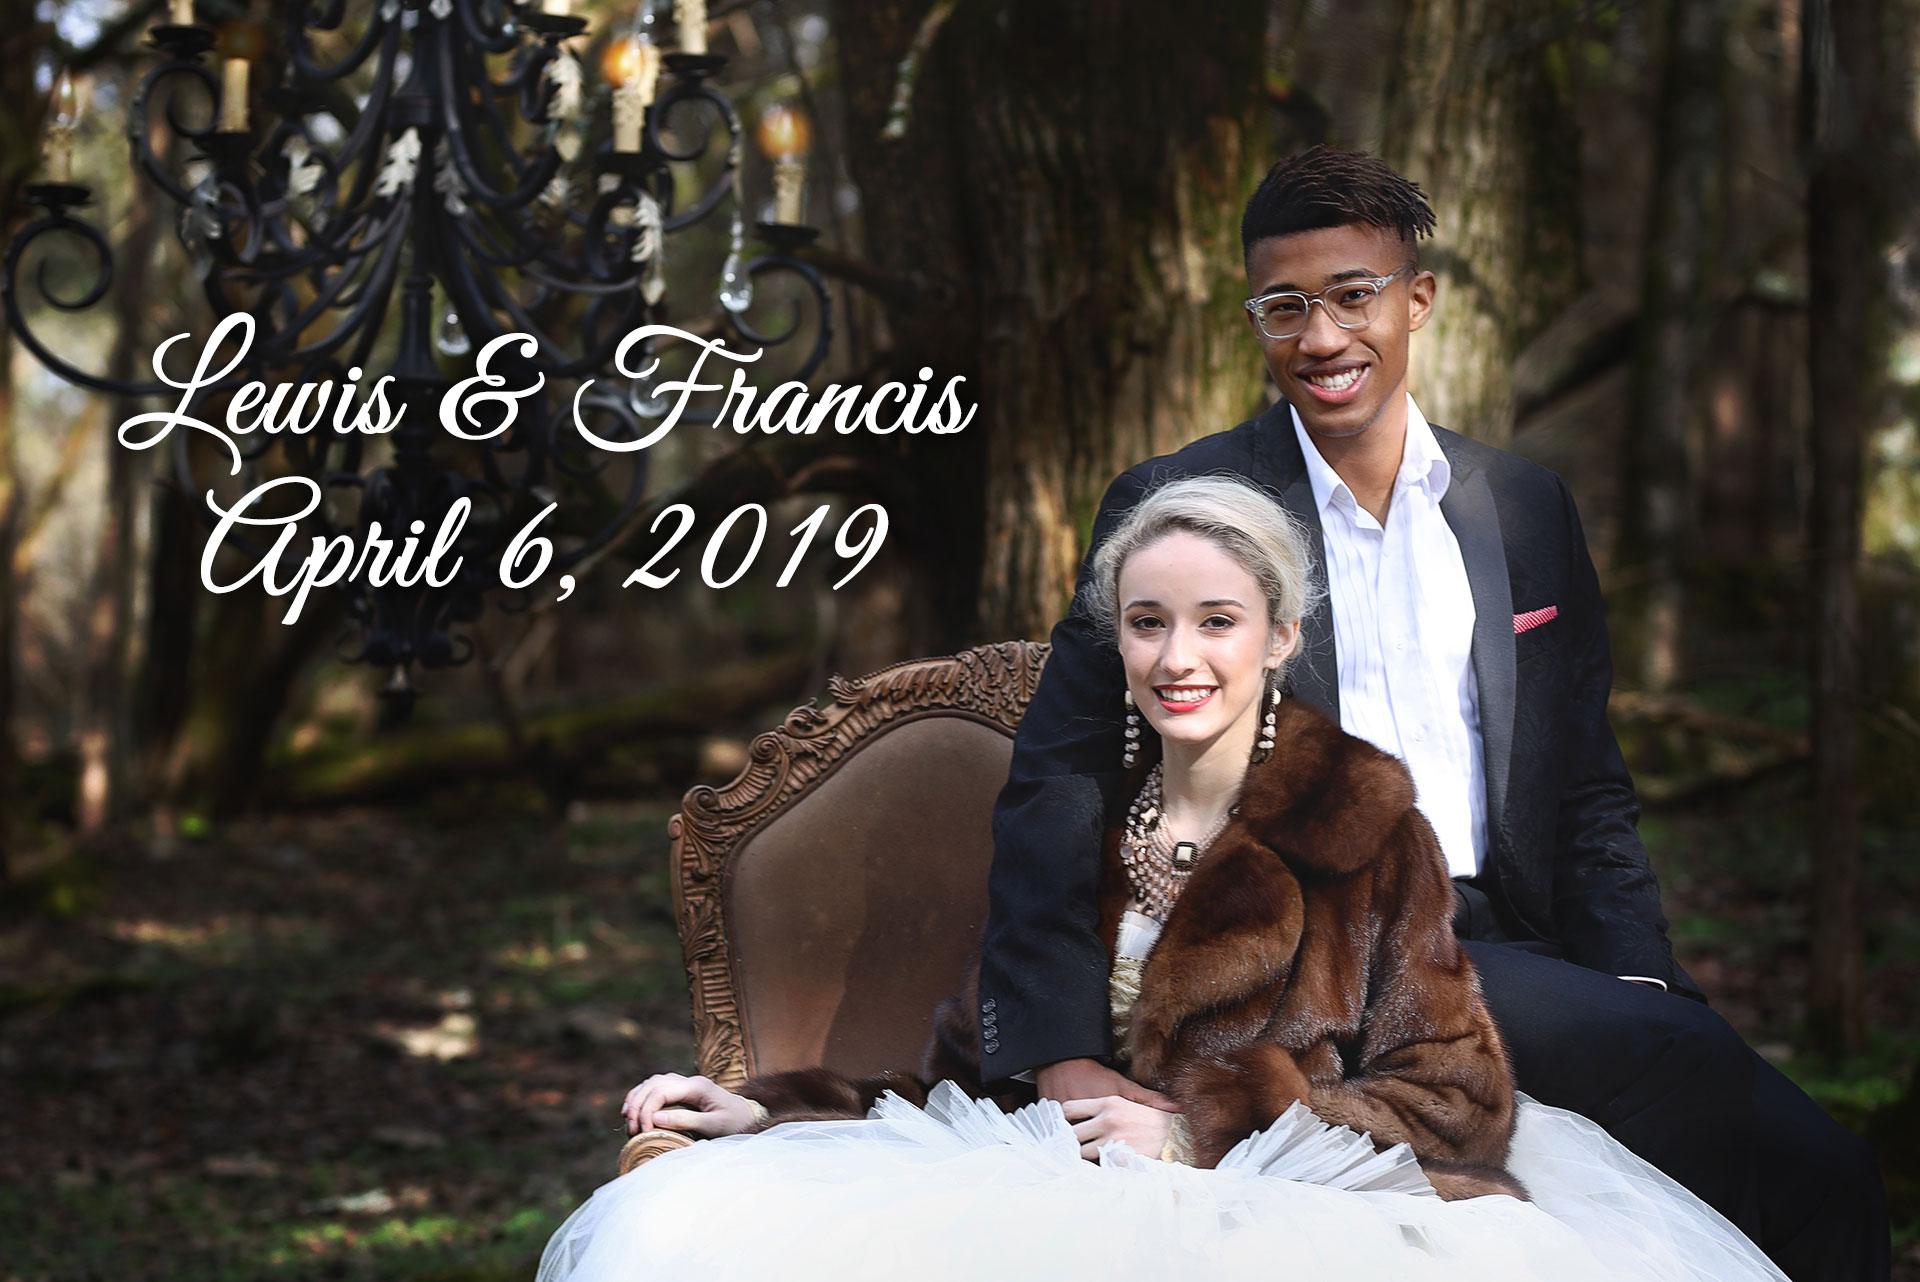 Lewis-Francis Remnant Fellowship Wedding